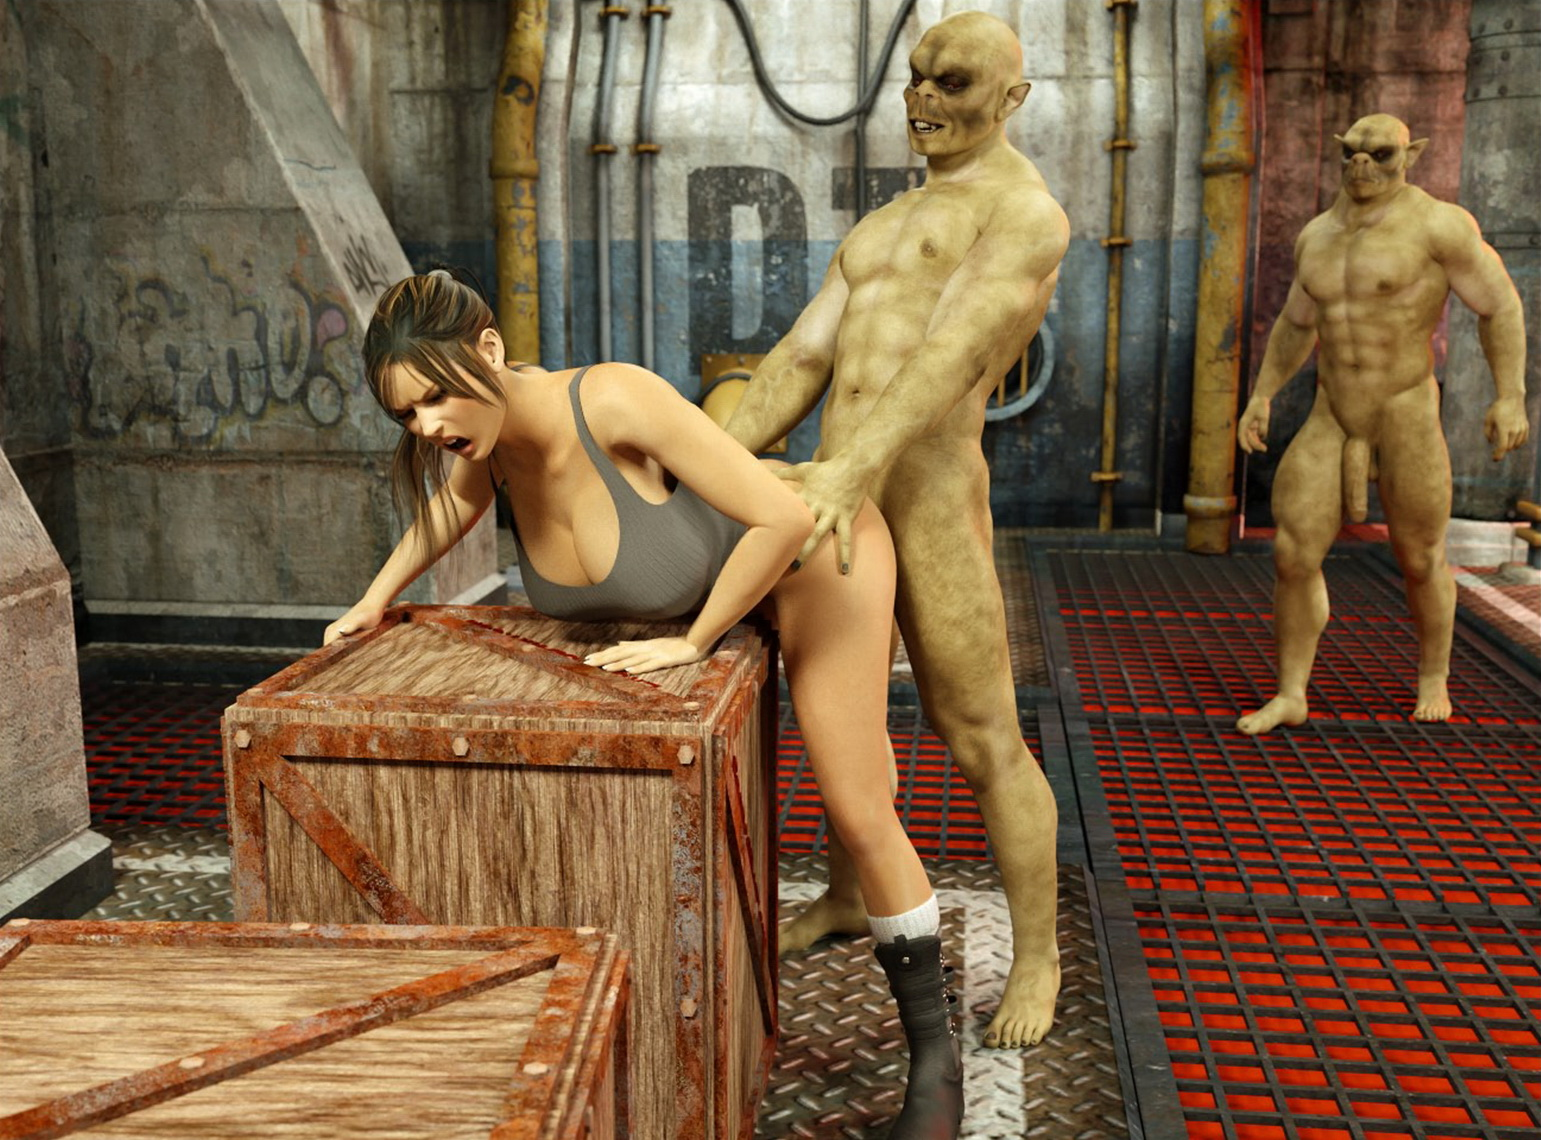 Lara croft 3d monster sex video nudes drunk porn star